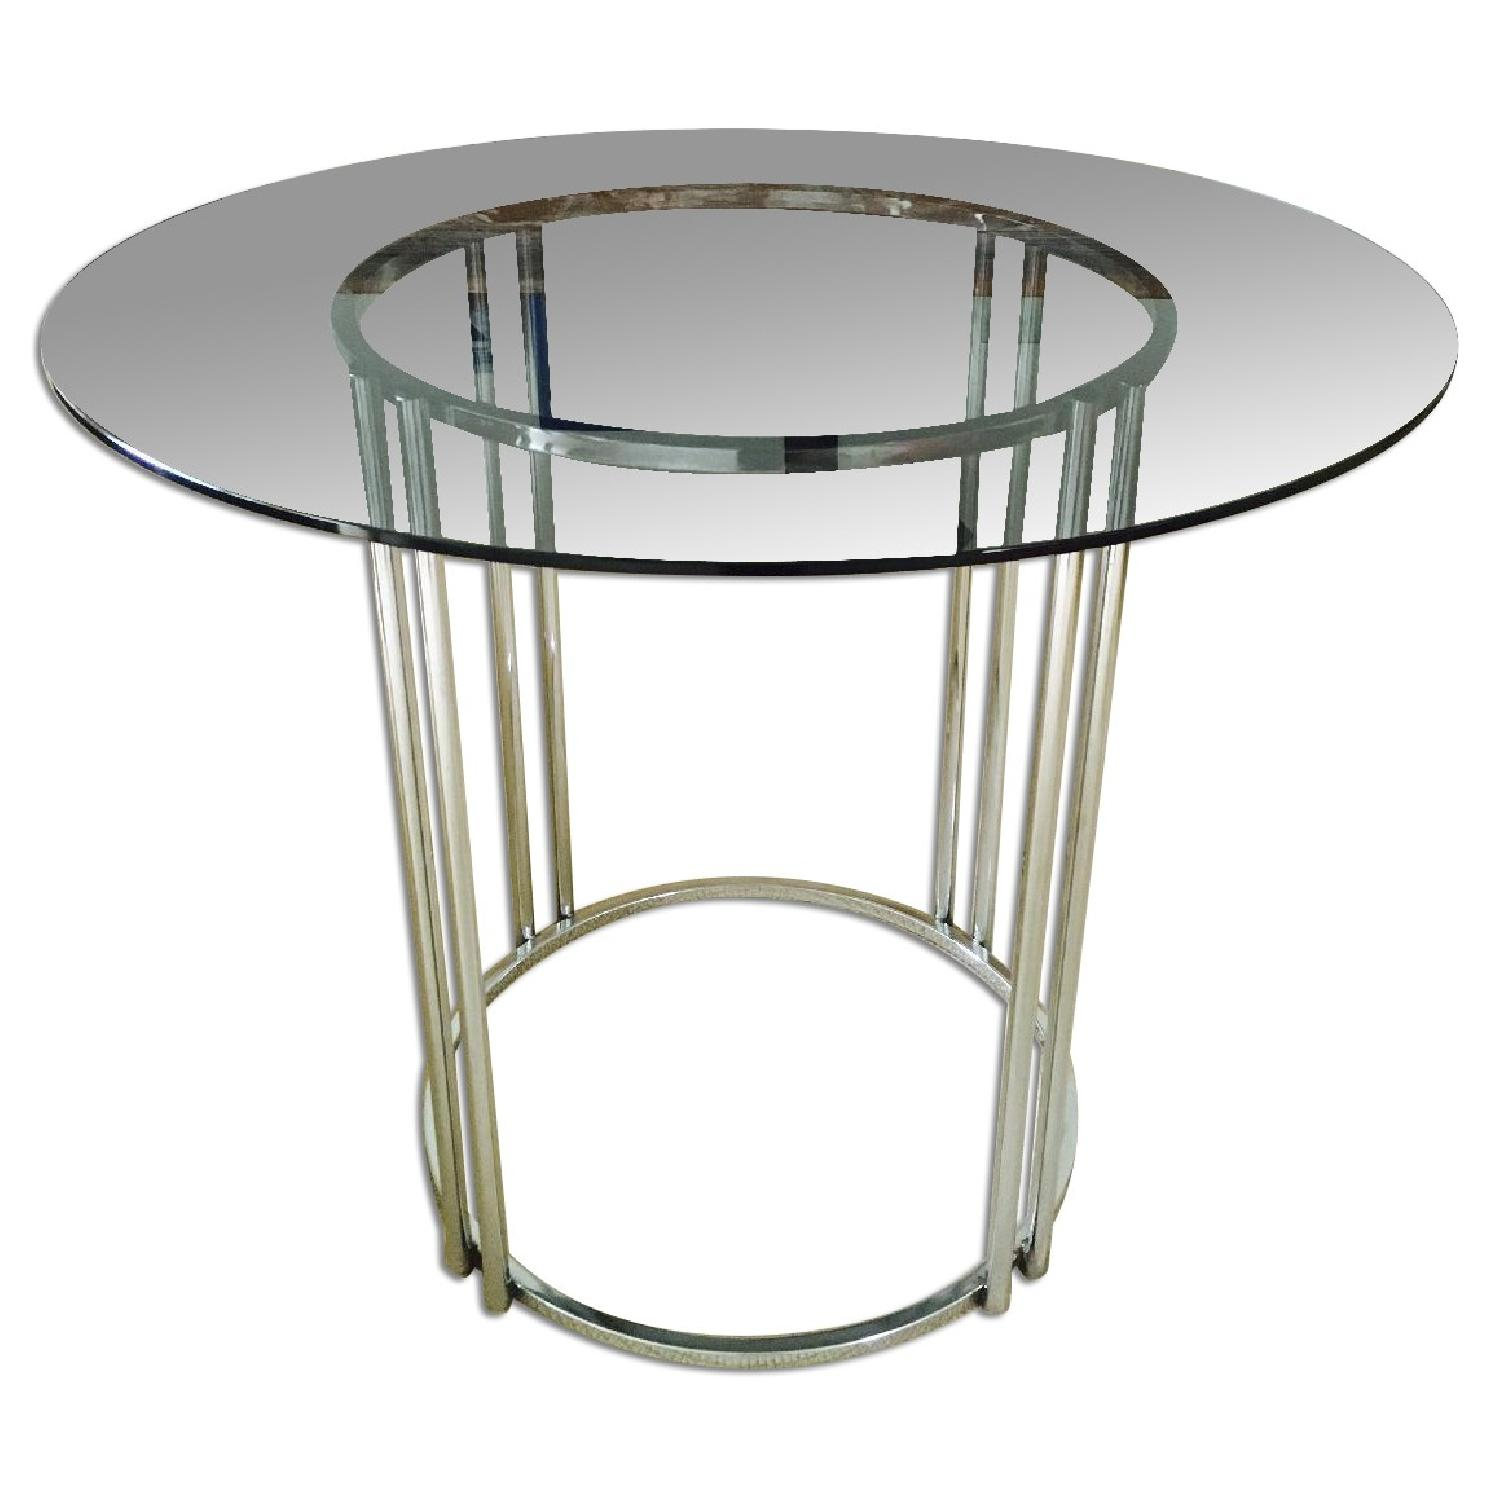 Vintage Chrome & Smoked Glass Dining/Occasional Table - image-0